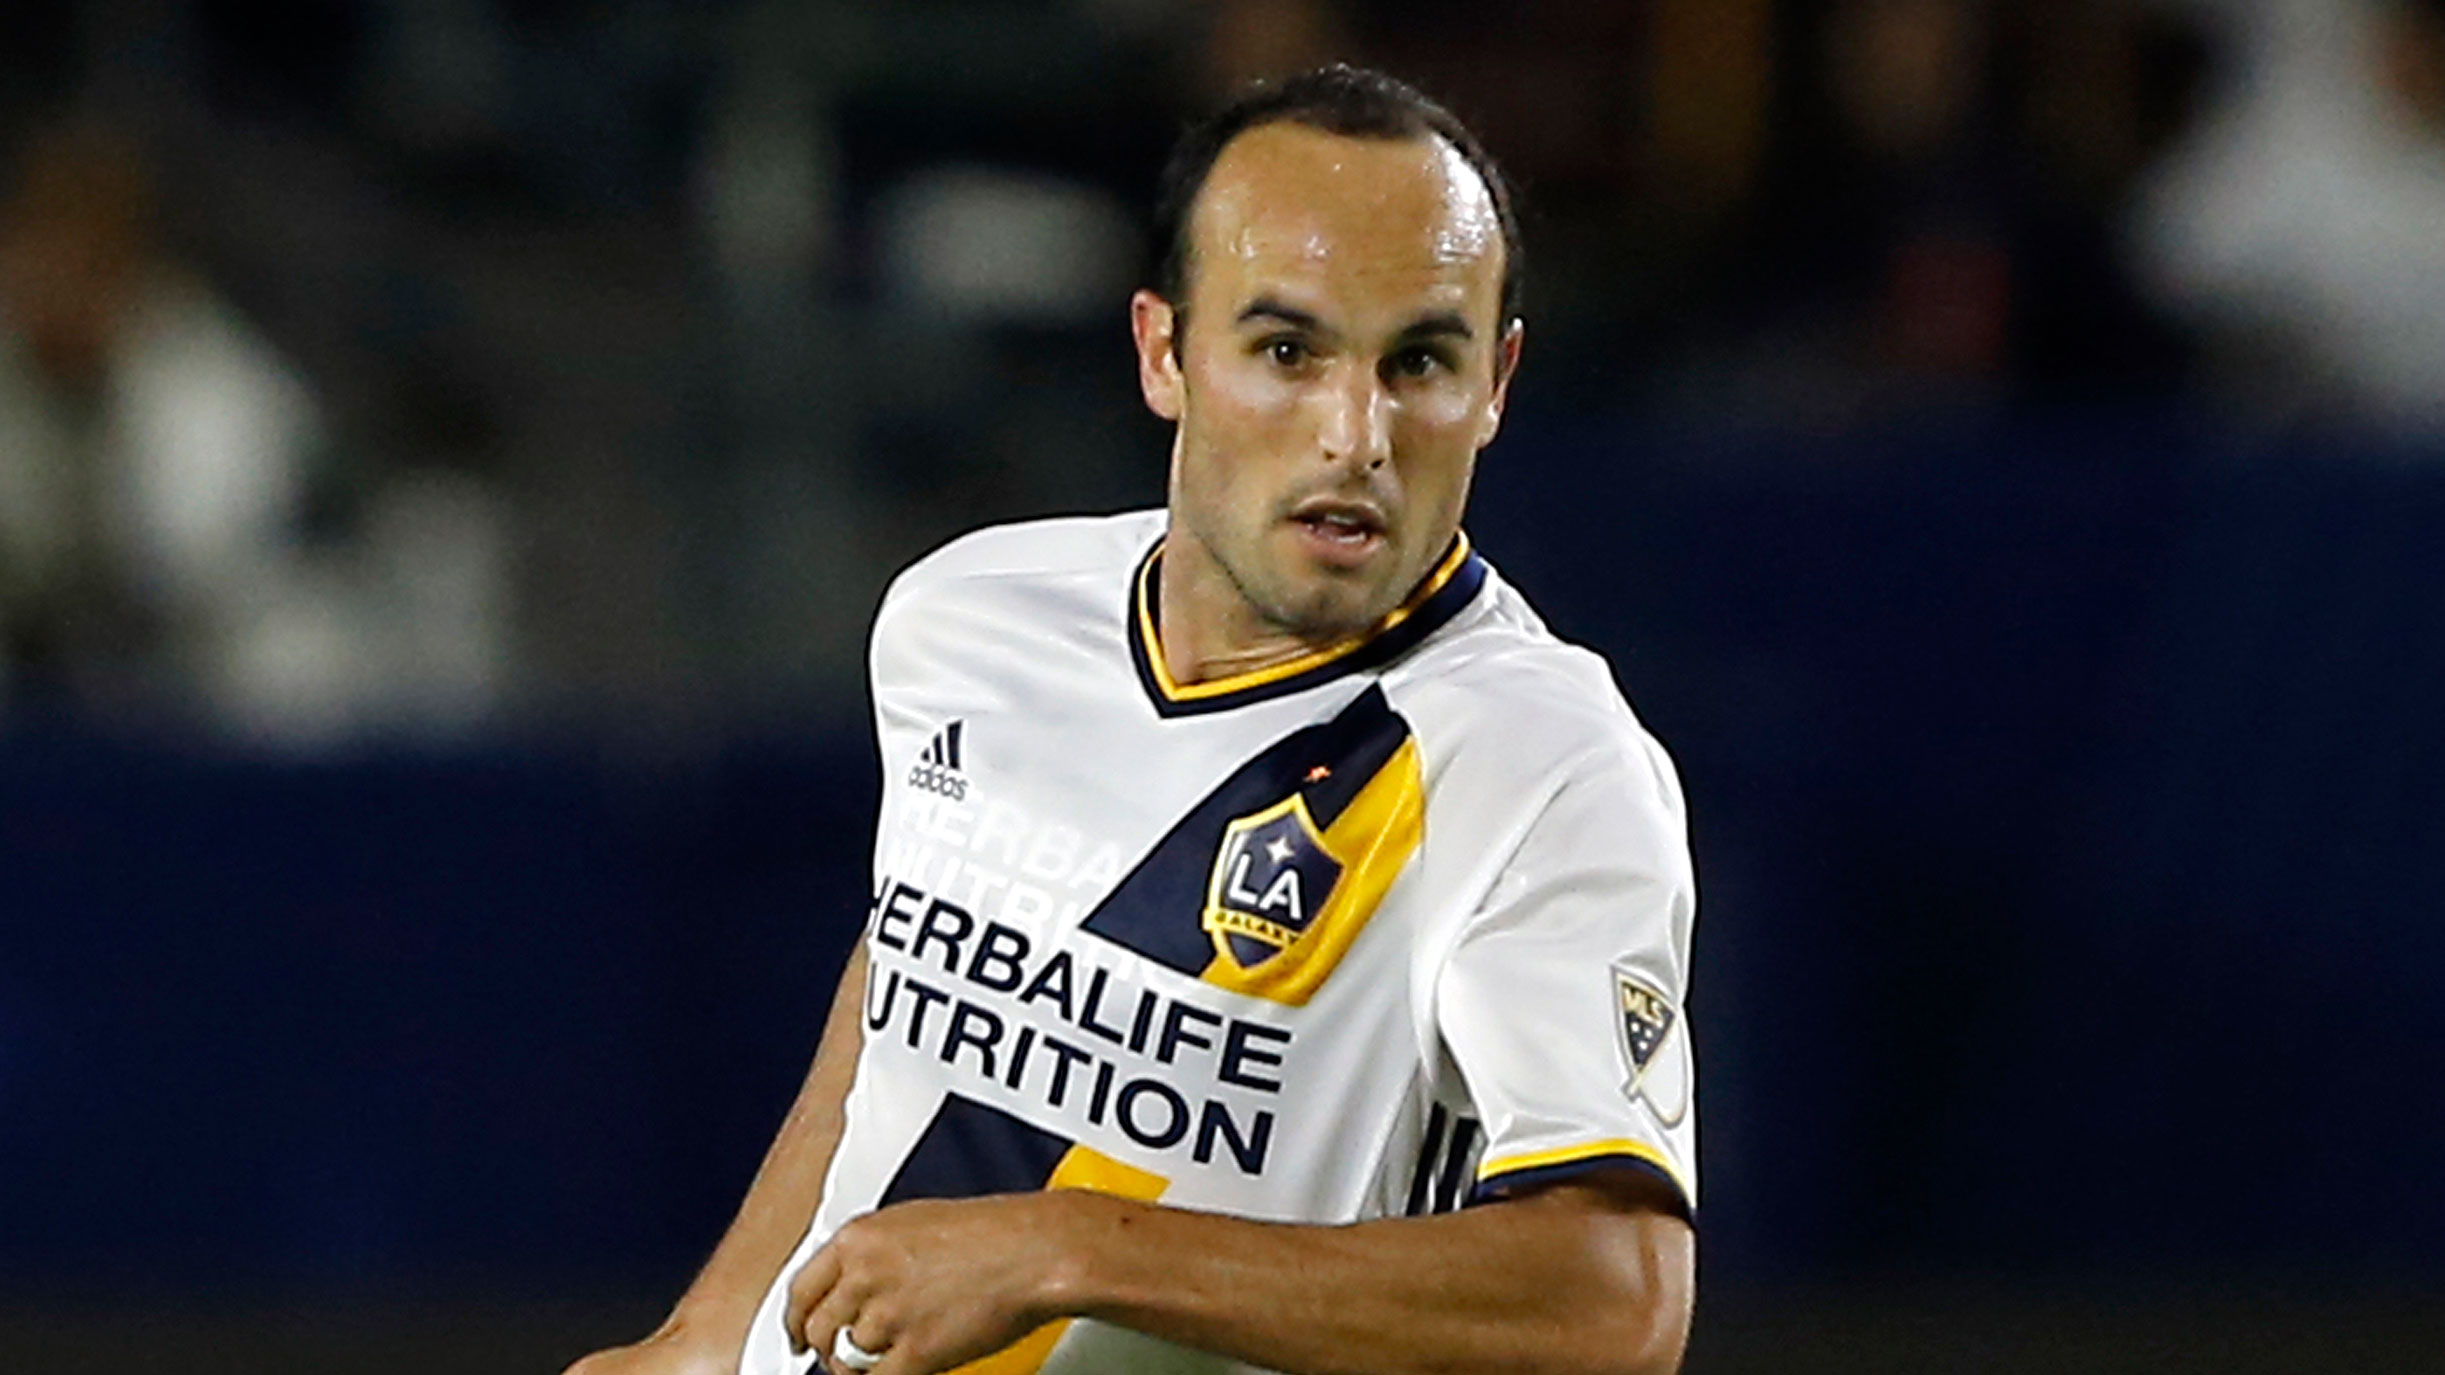 U.S.-Soccer-legend-Landon-Donovan-coming-out-of-retirement-in-stunner